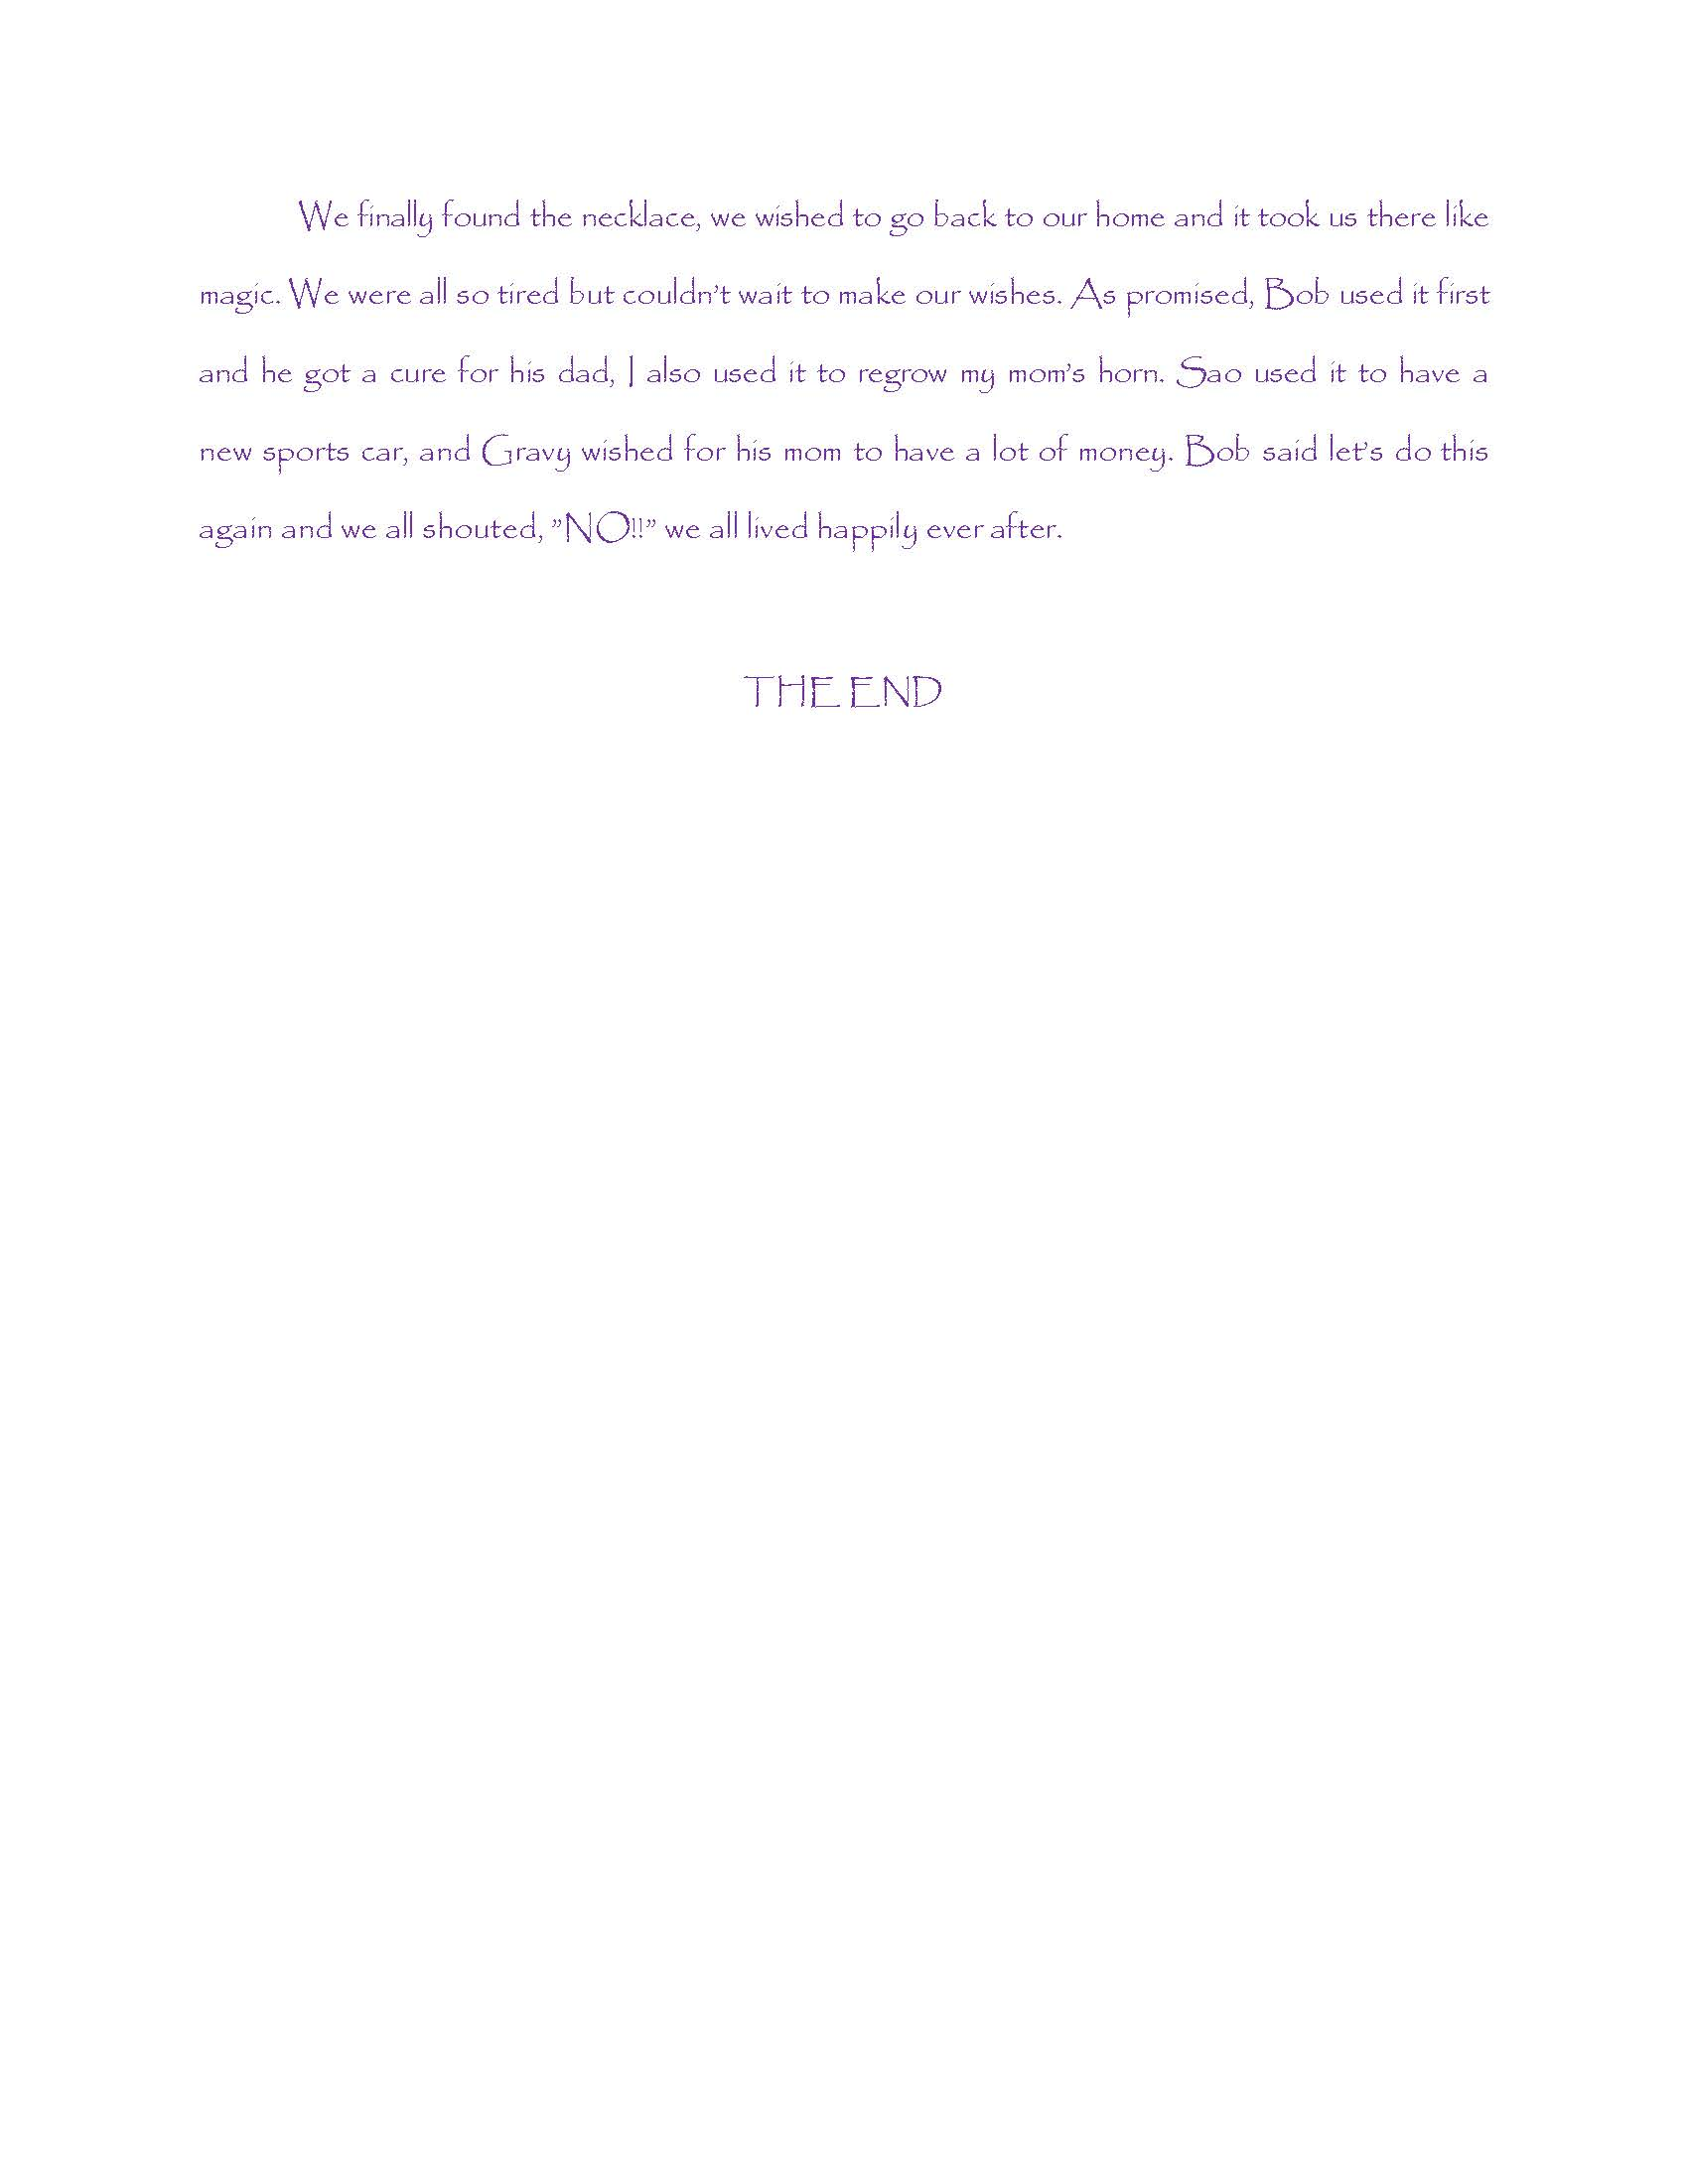 PT-Short-Story_Page_09